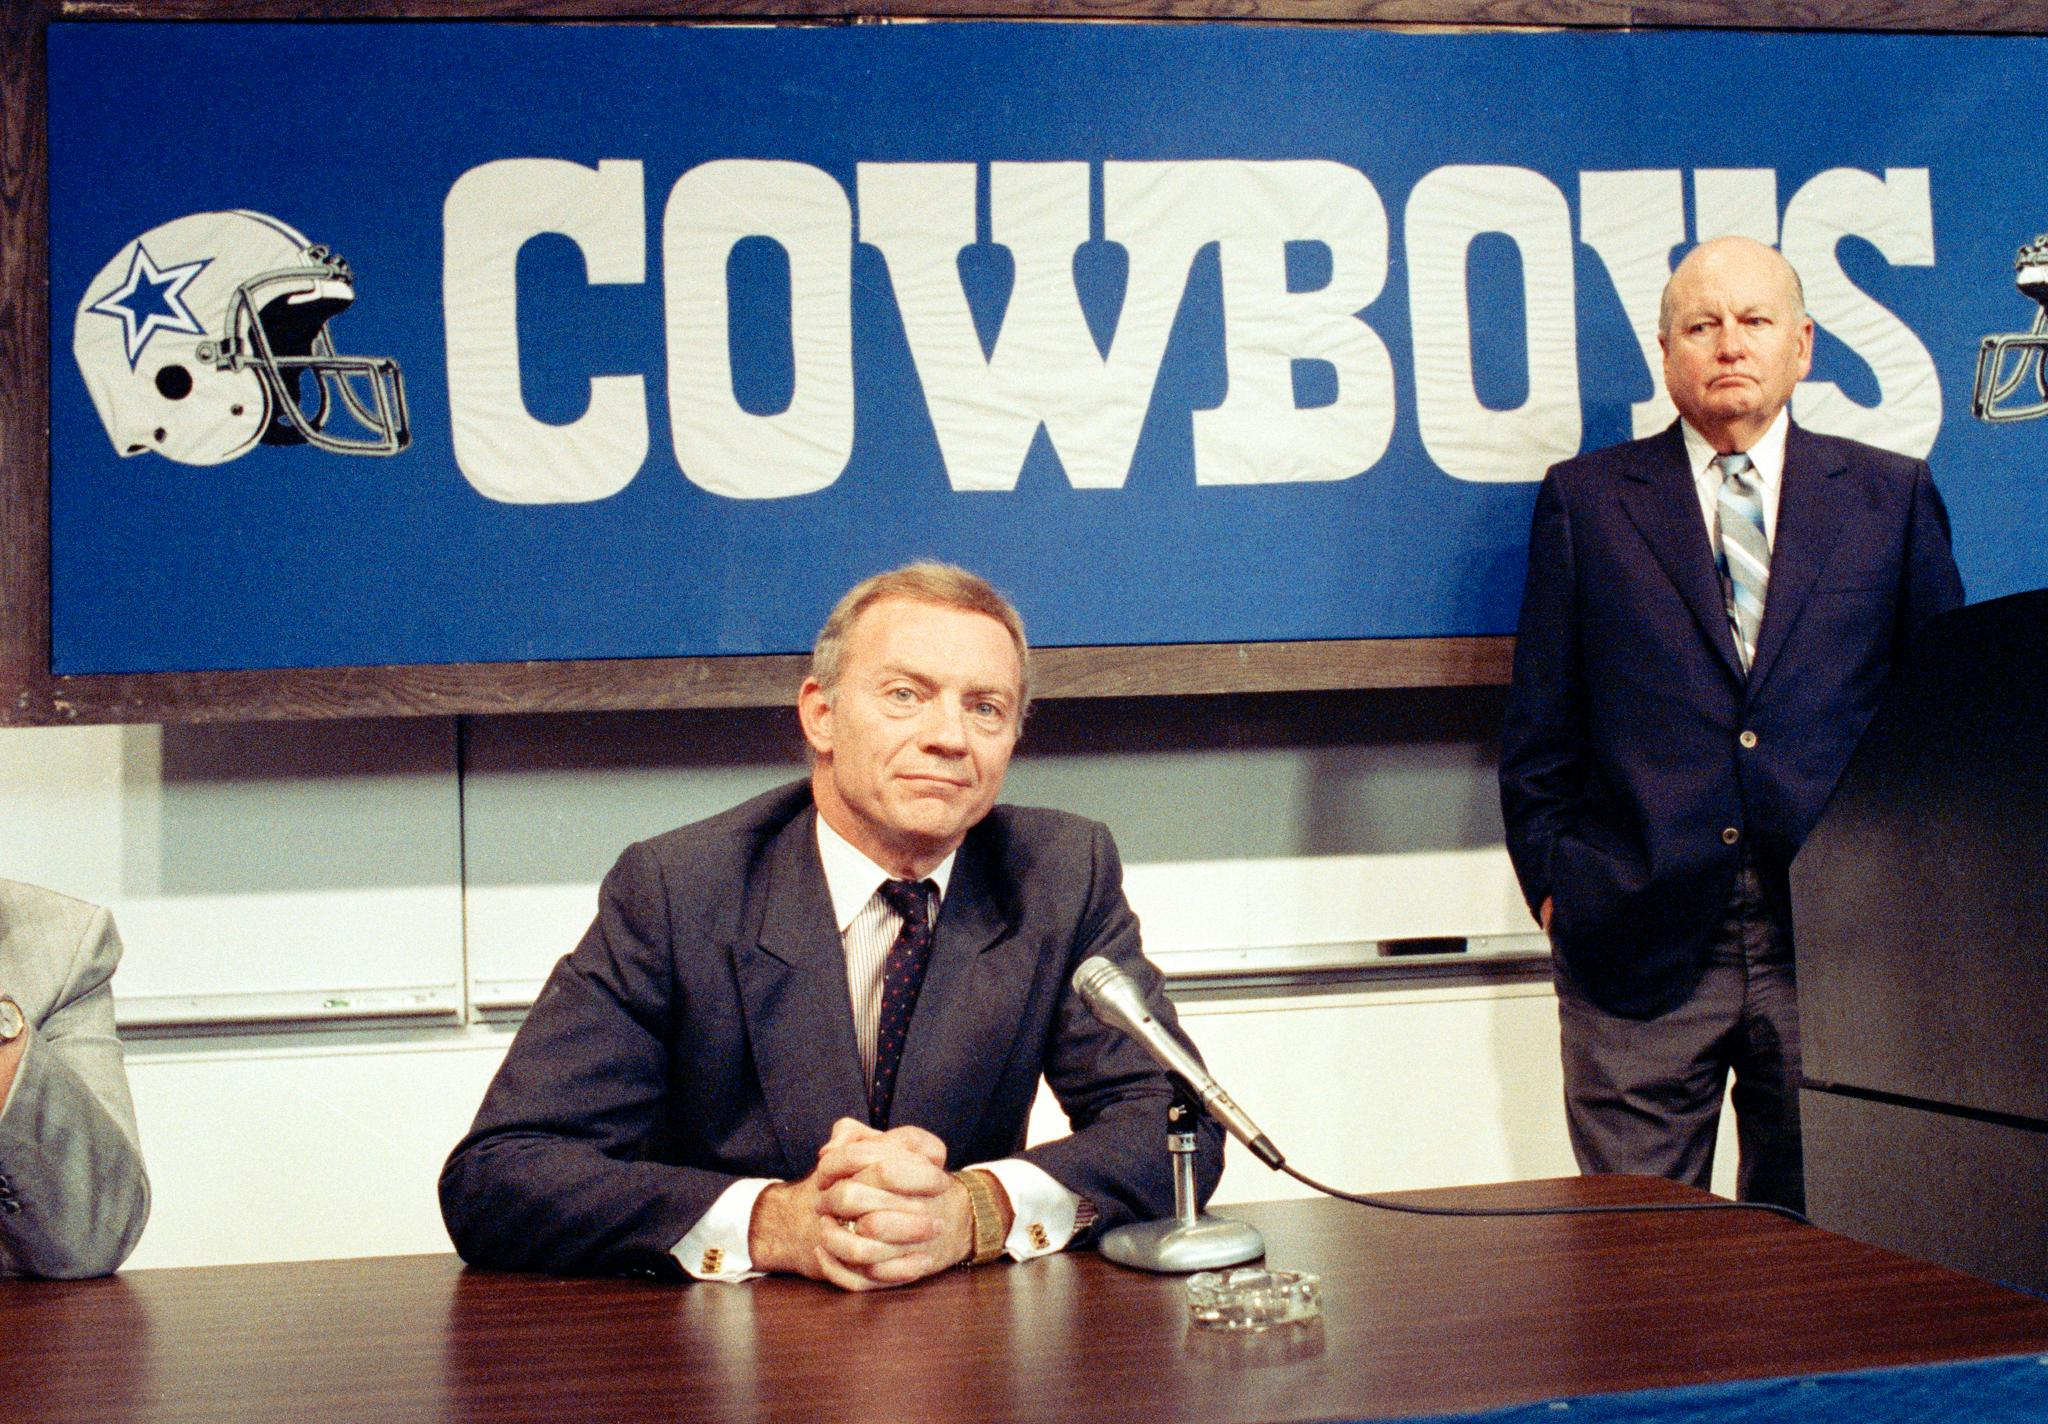 On this date in 1989, Jerry Jones took control of the Cowboys for an NFL franchise record $140 million. https://t.co/84VcZJI6Zi